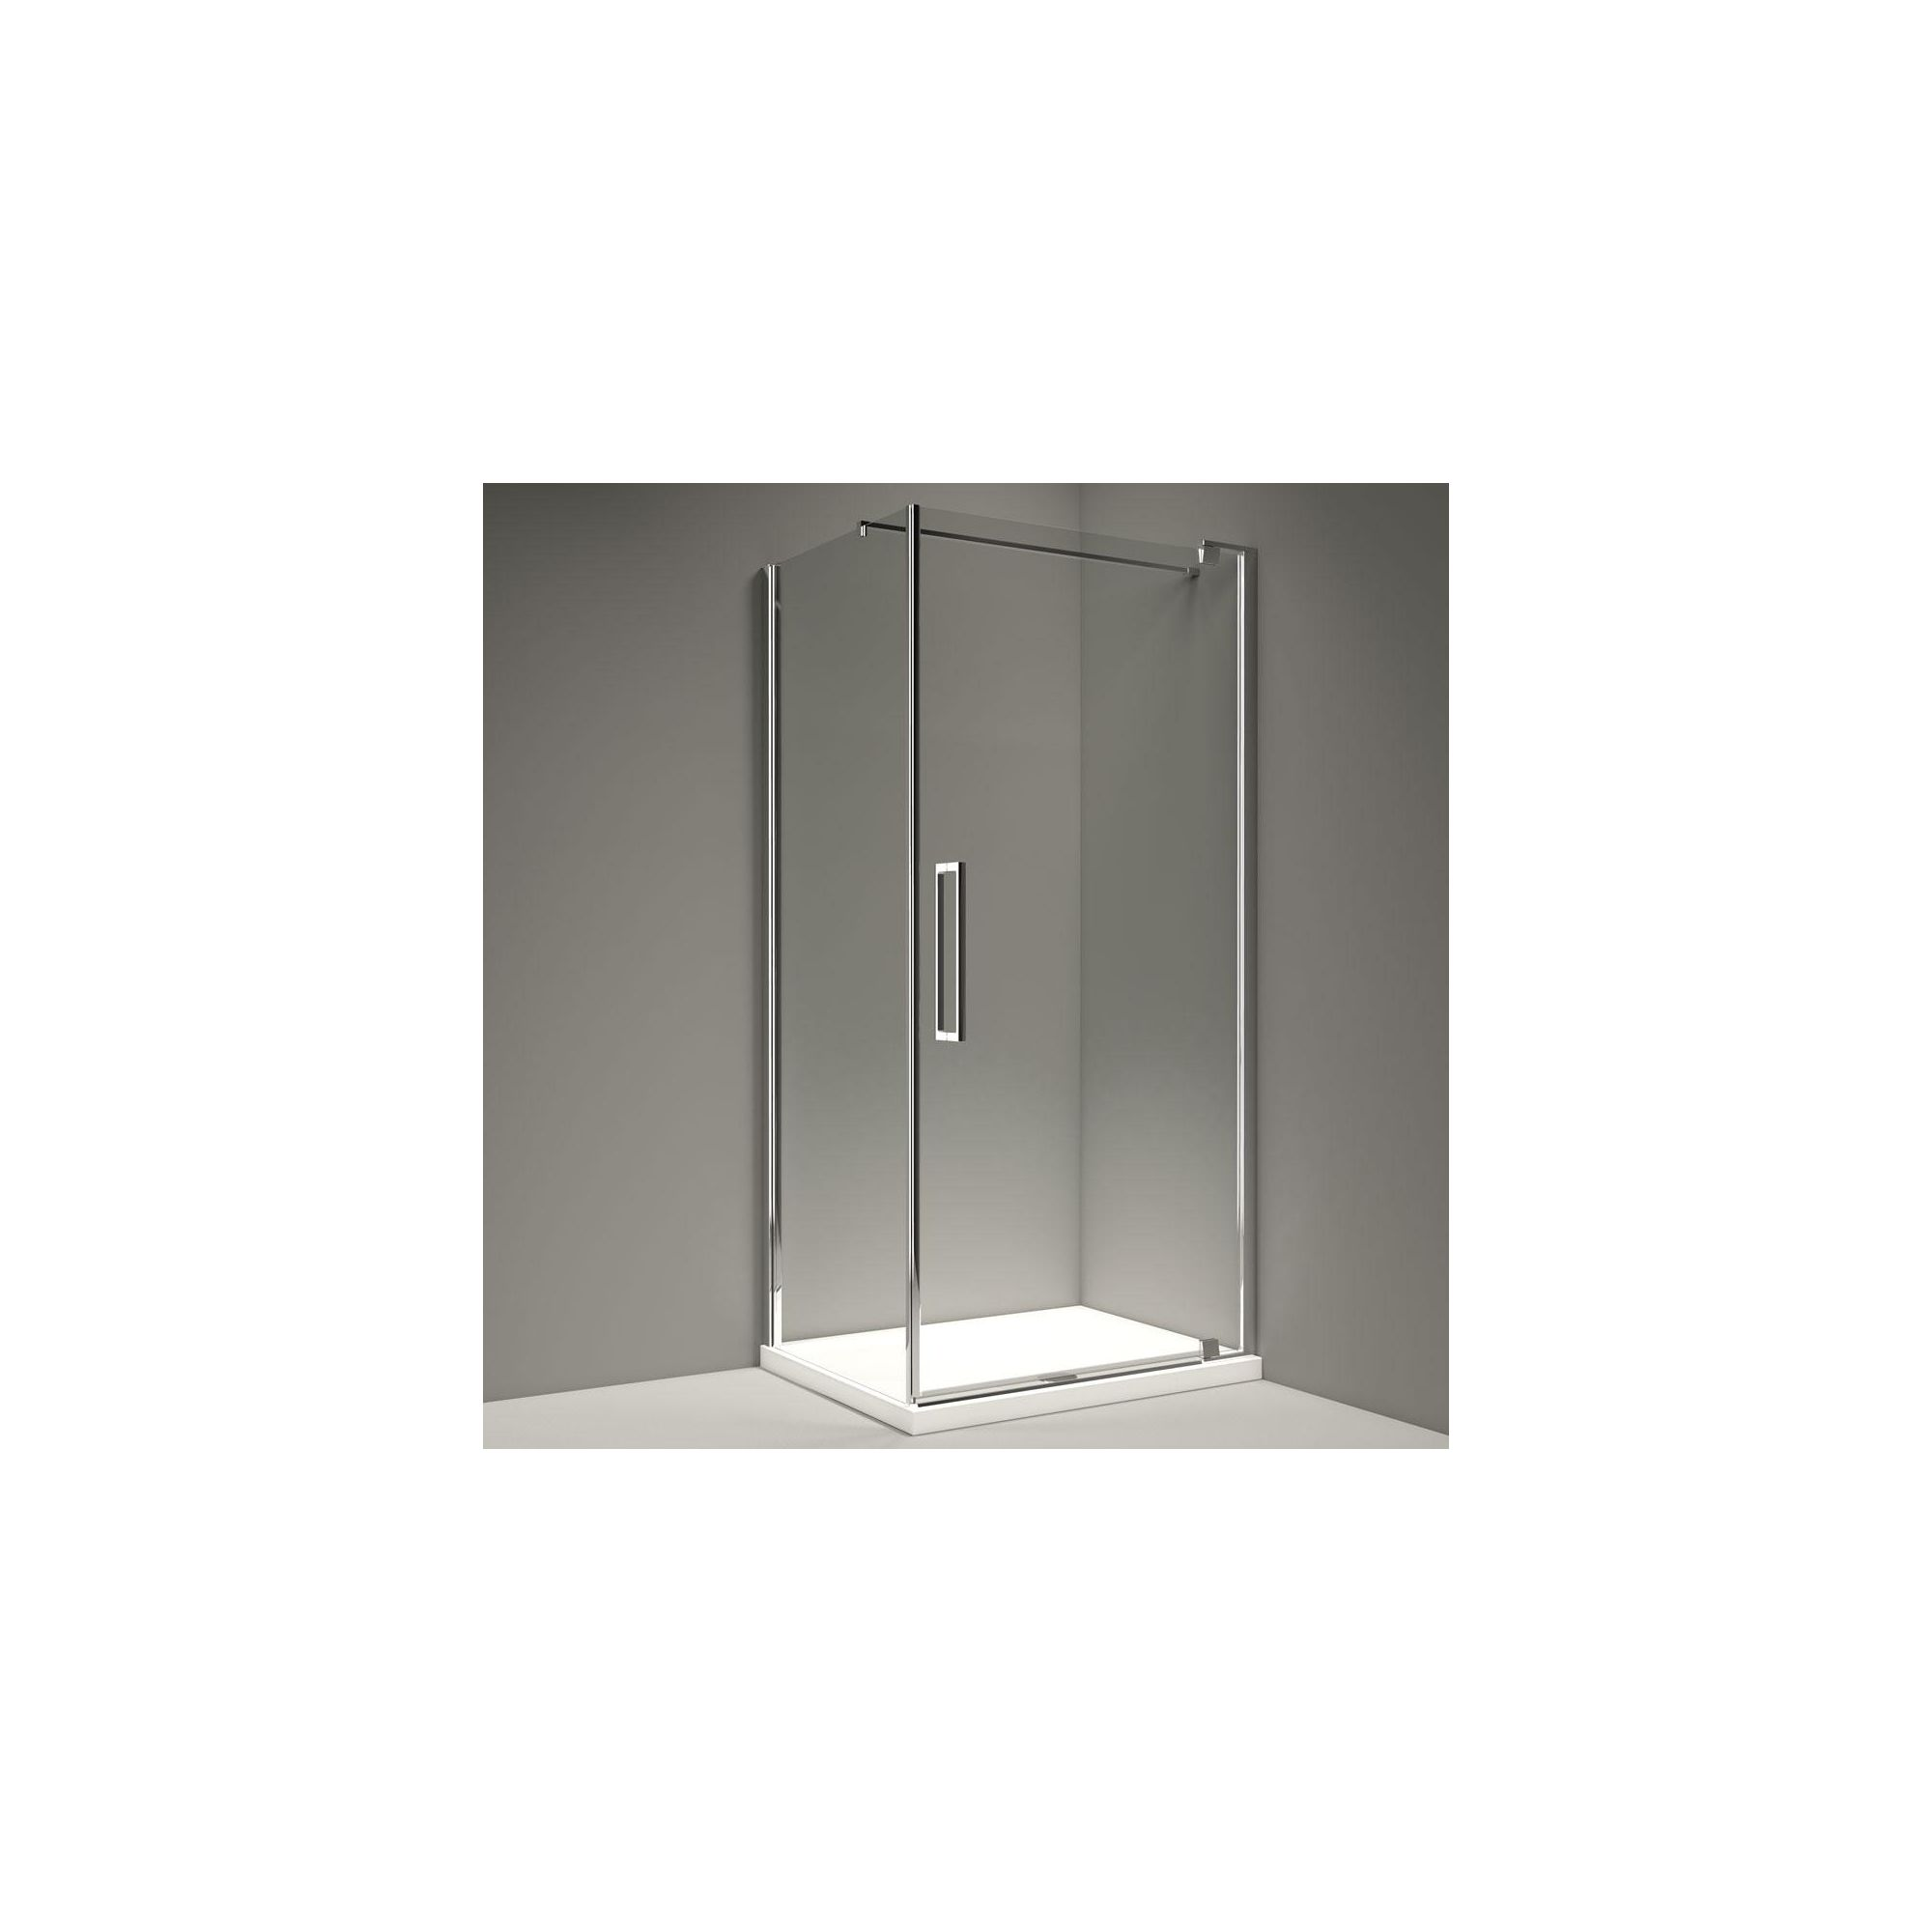 Merlyn Series 10 Pivot Shower Door, 900mm Wide, 10mm Smoked Glass at Tesco Direct